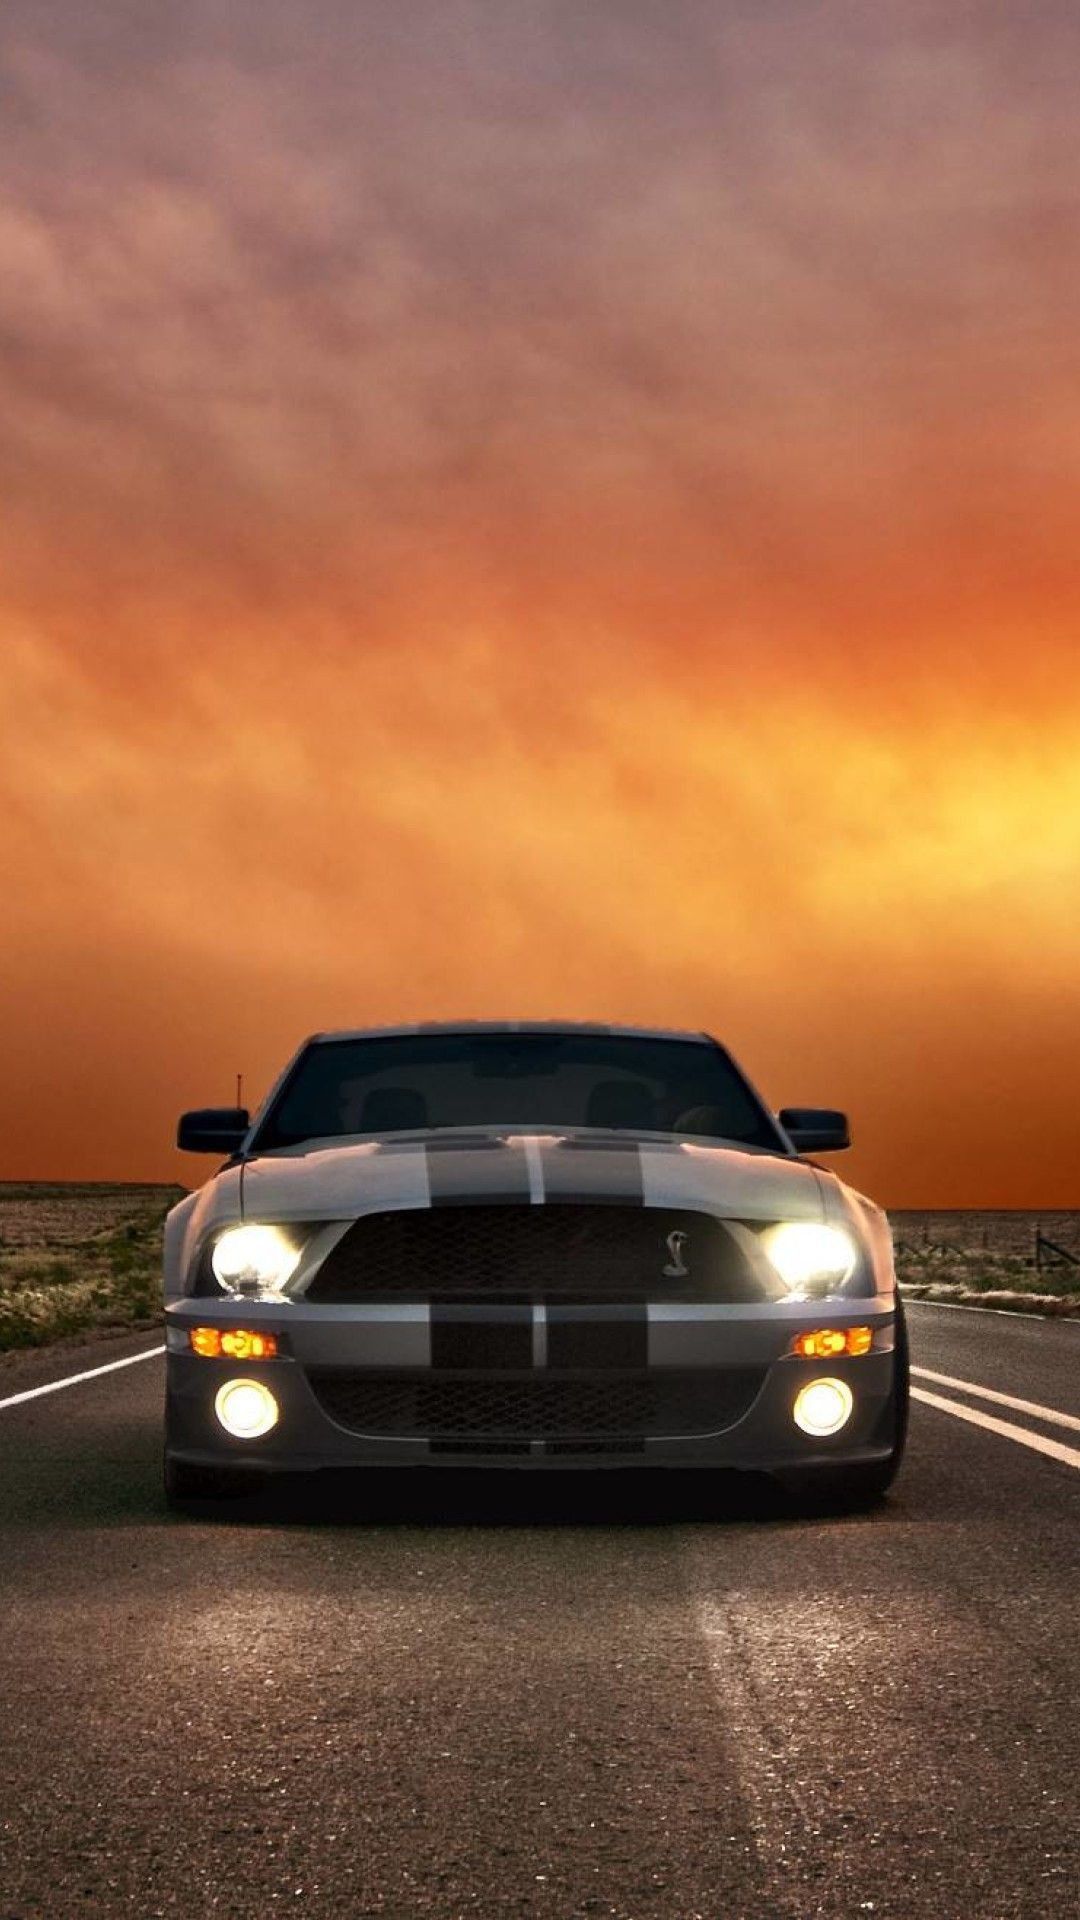 Full Hd Mustang Iphone Wallpaper ipcwallpapers in 2020